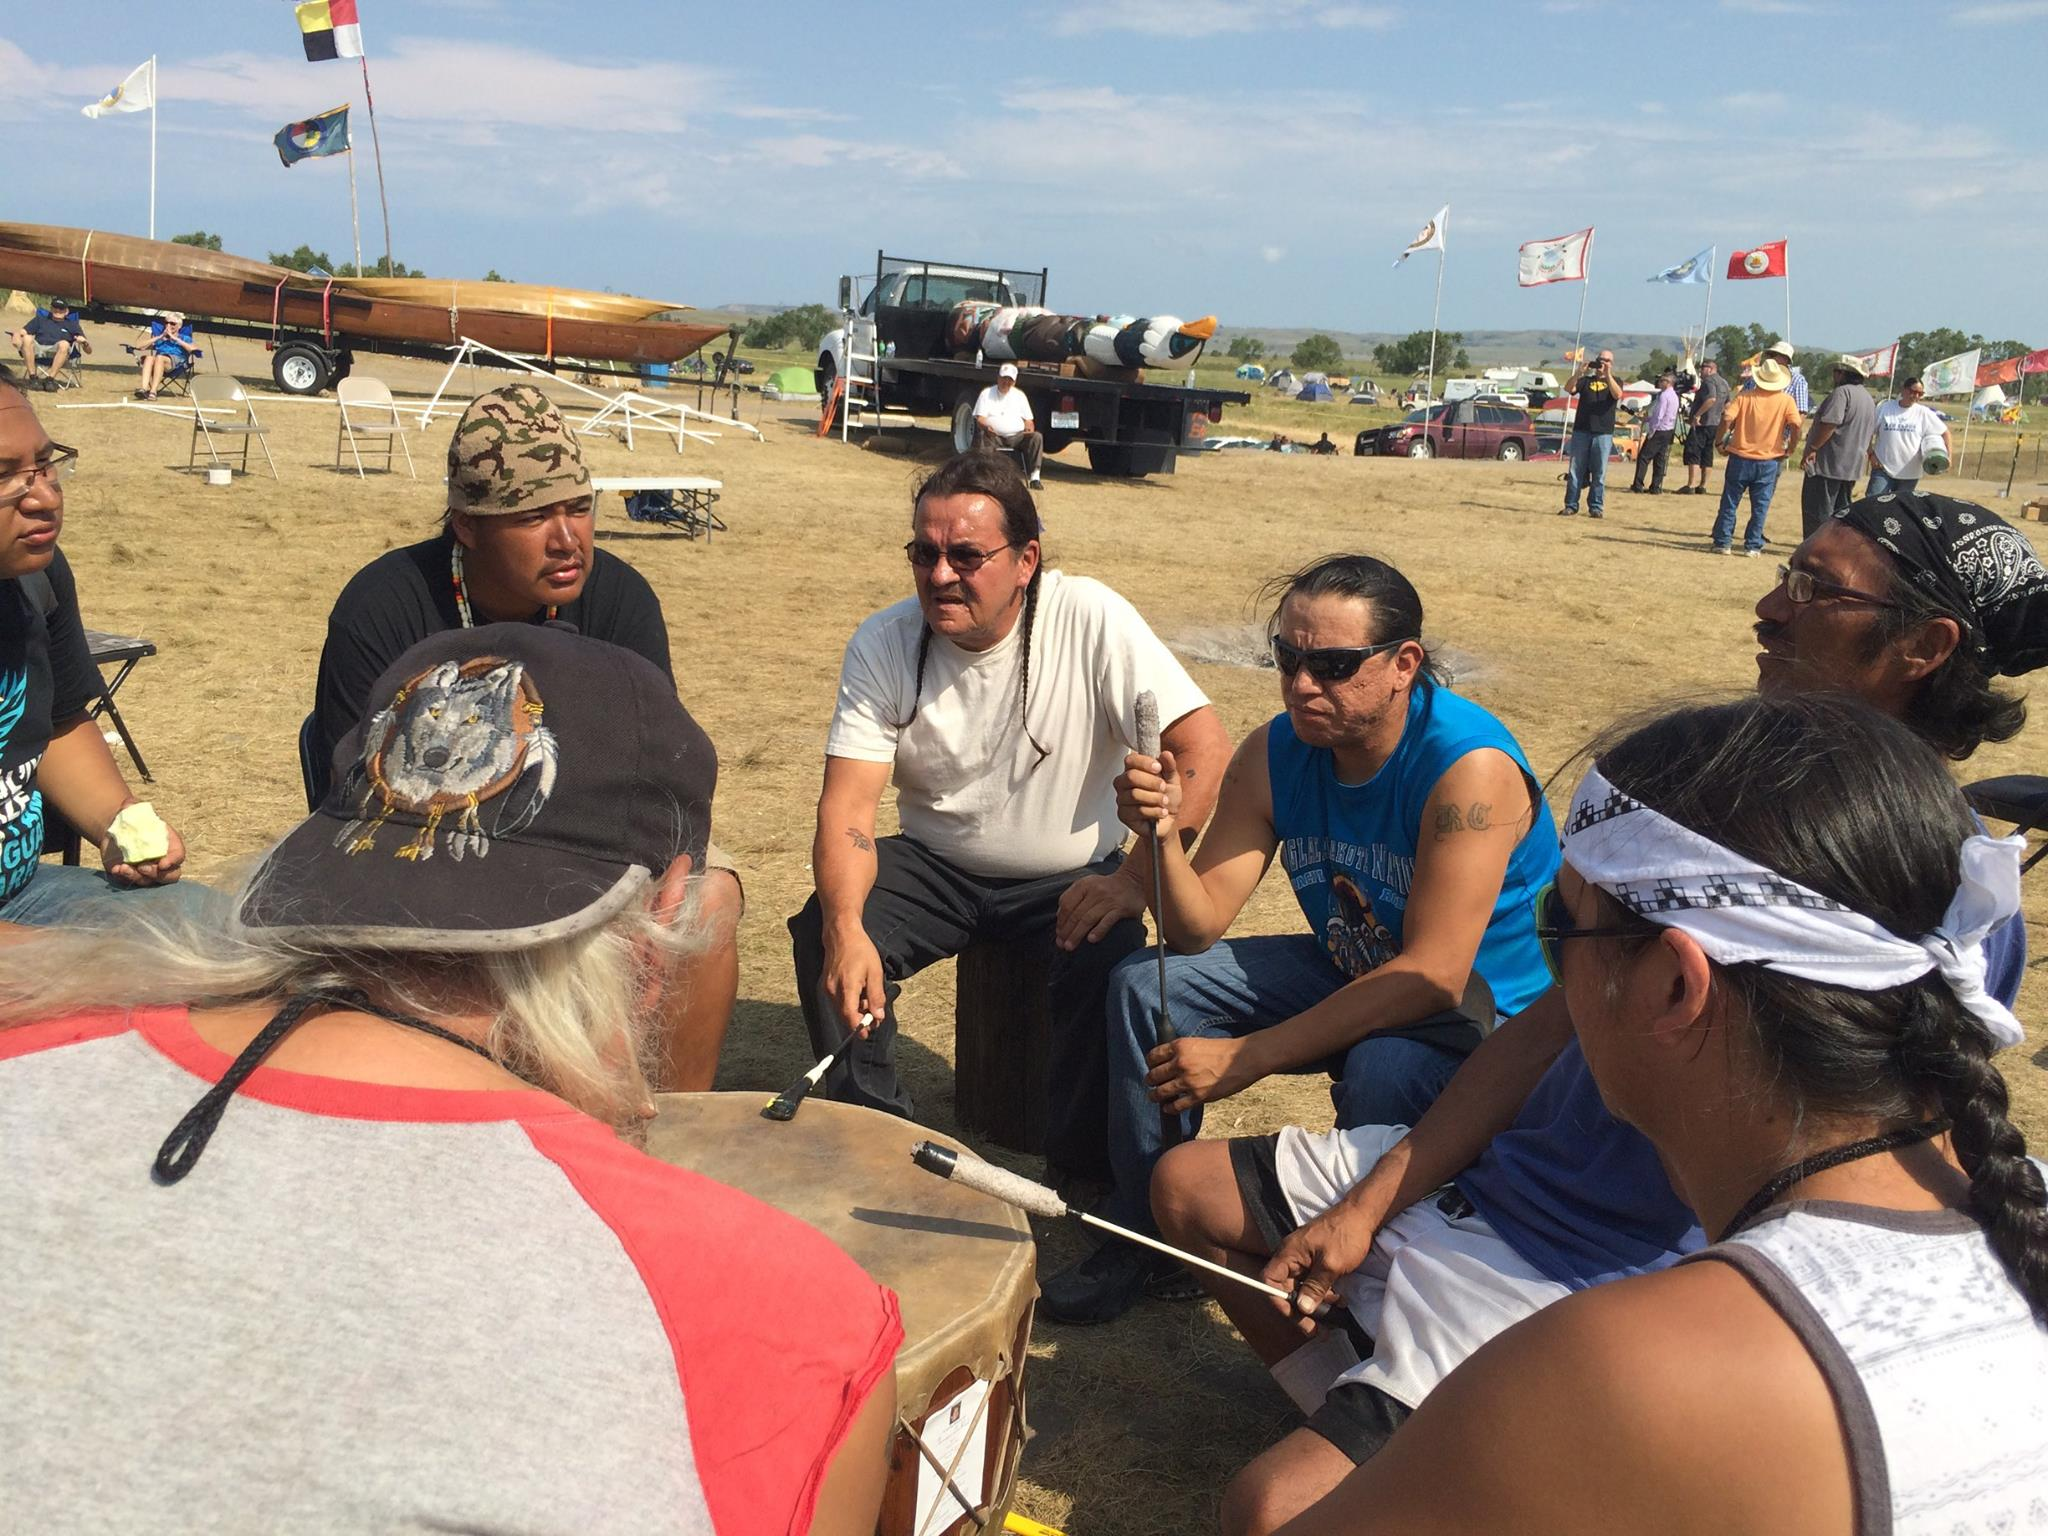 Mark Trahant: Candidate shows support for #NoDAPL movement